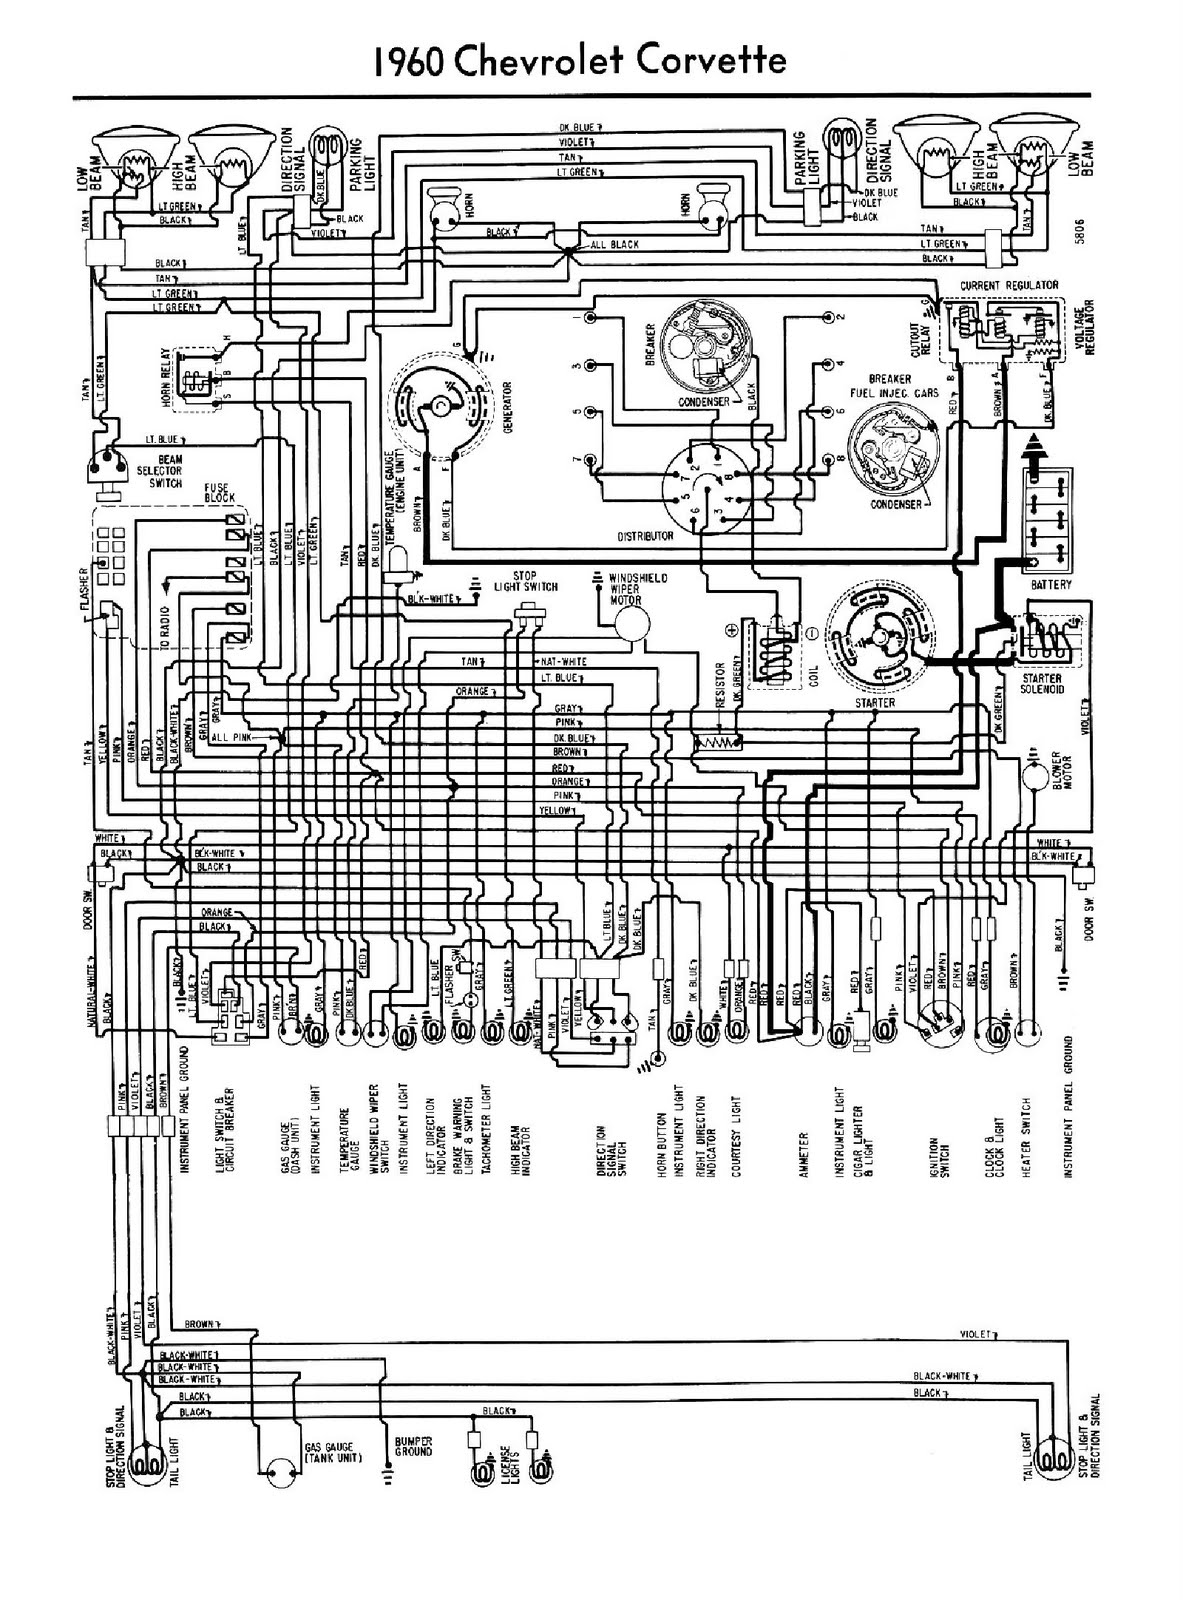 1960_Chevrolet_Corvette_Wiring free auto wiring diagram 1960 chevrolet corvette wiring diagram 1960 corvette wiring diagram at panicattacktreatment.co